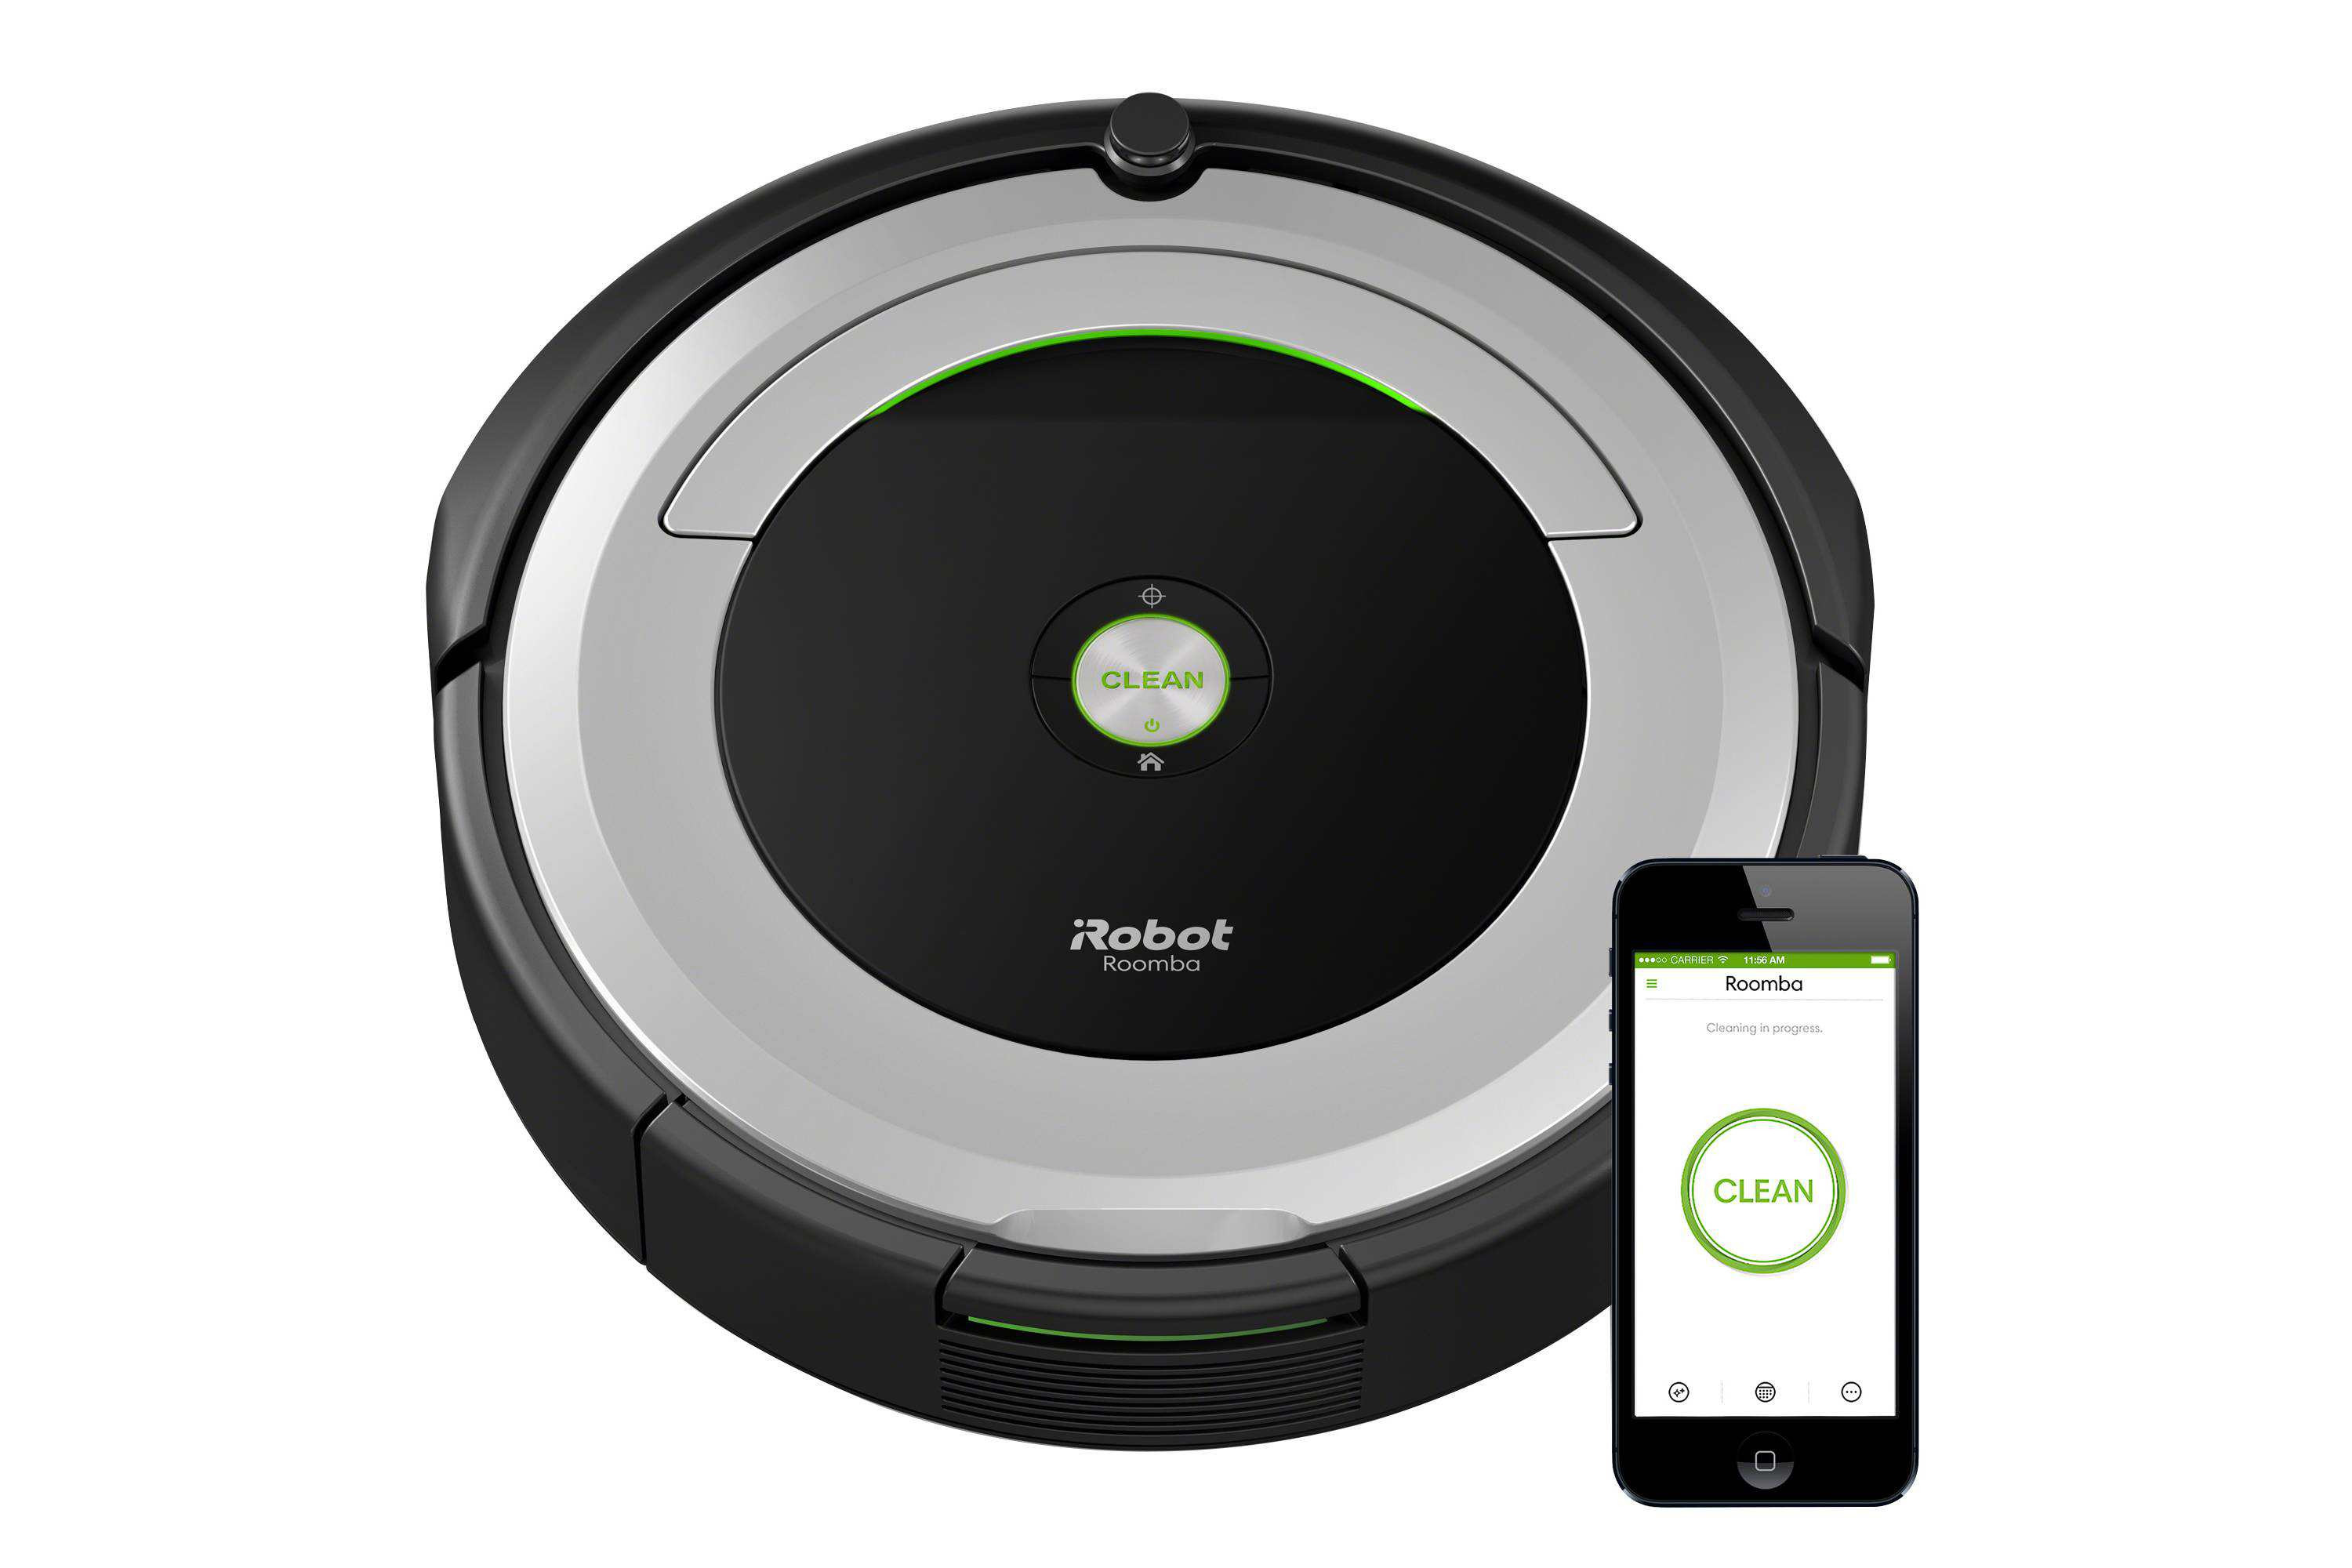 robot vacuum for hardwood floors of the 10 best vacuum cleaners to buy in 2018 for best robot vacuum irobota roombaa 690 wi fia connected vacuuming robot